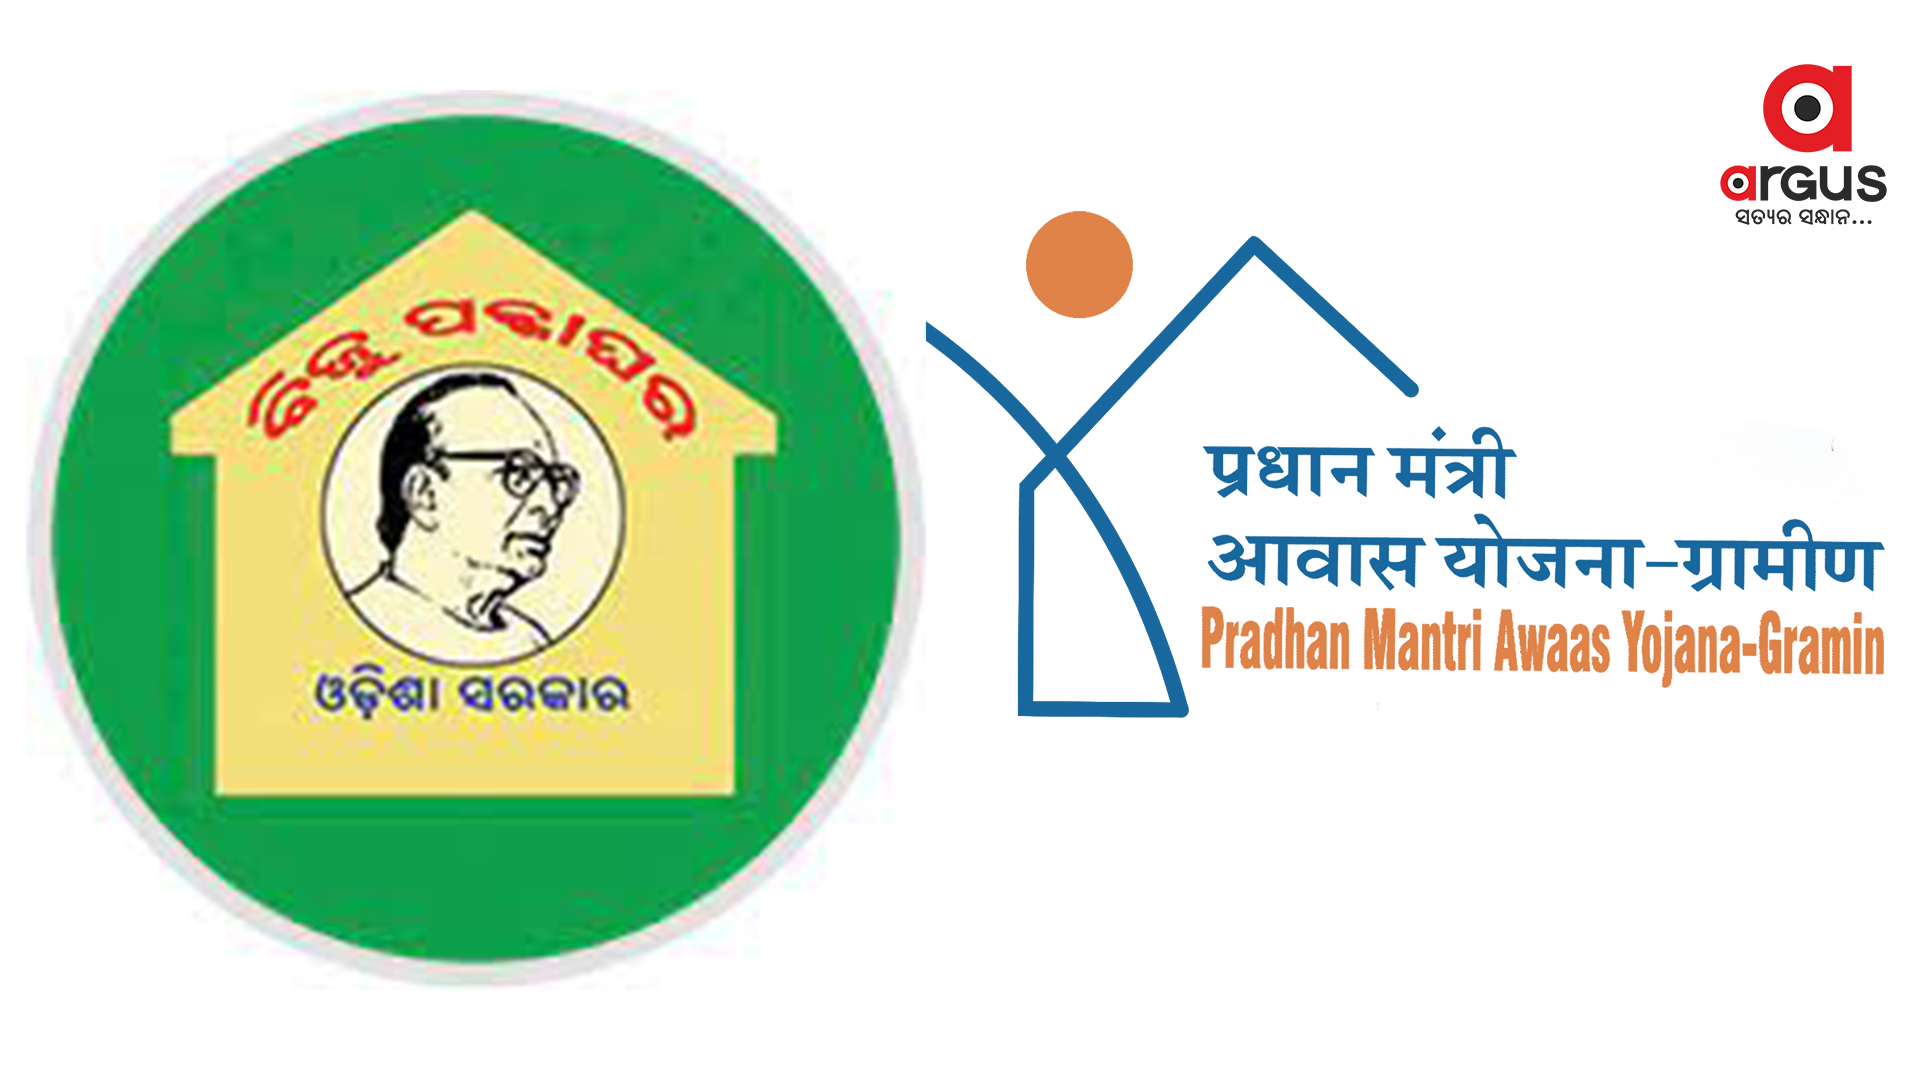 Centre asks Odisha Govt not to use Biju Pucca Ghar Yojana logo on PMAY-G houses